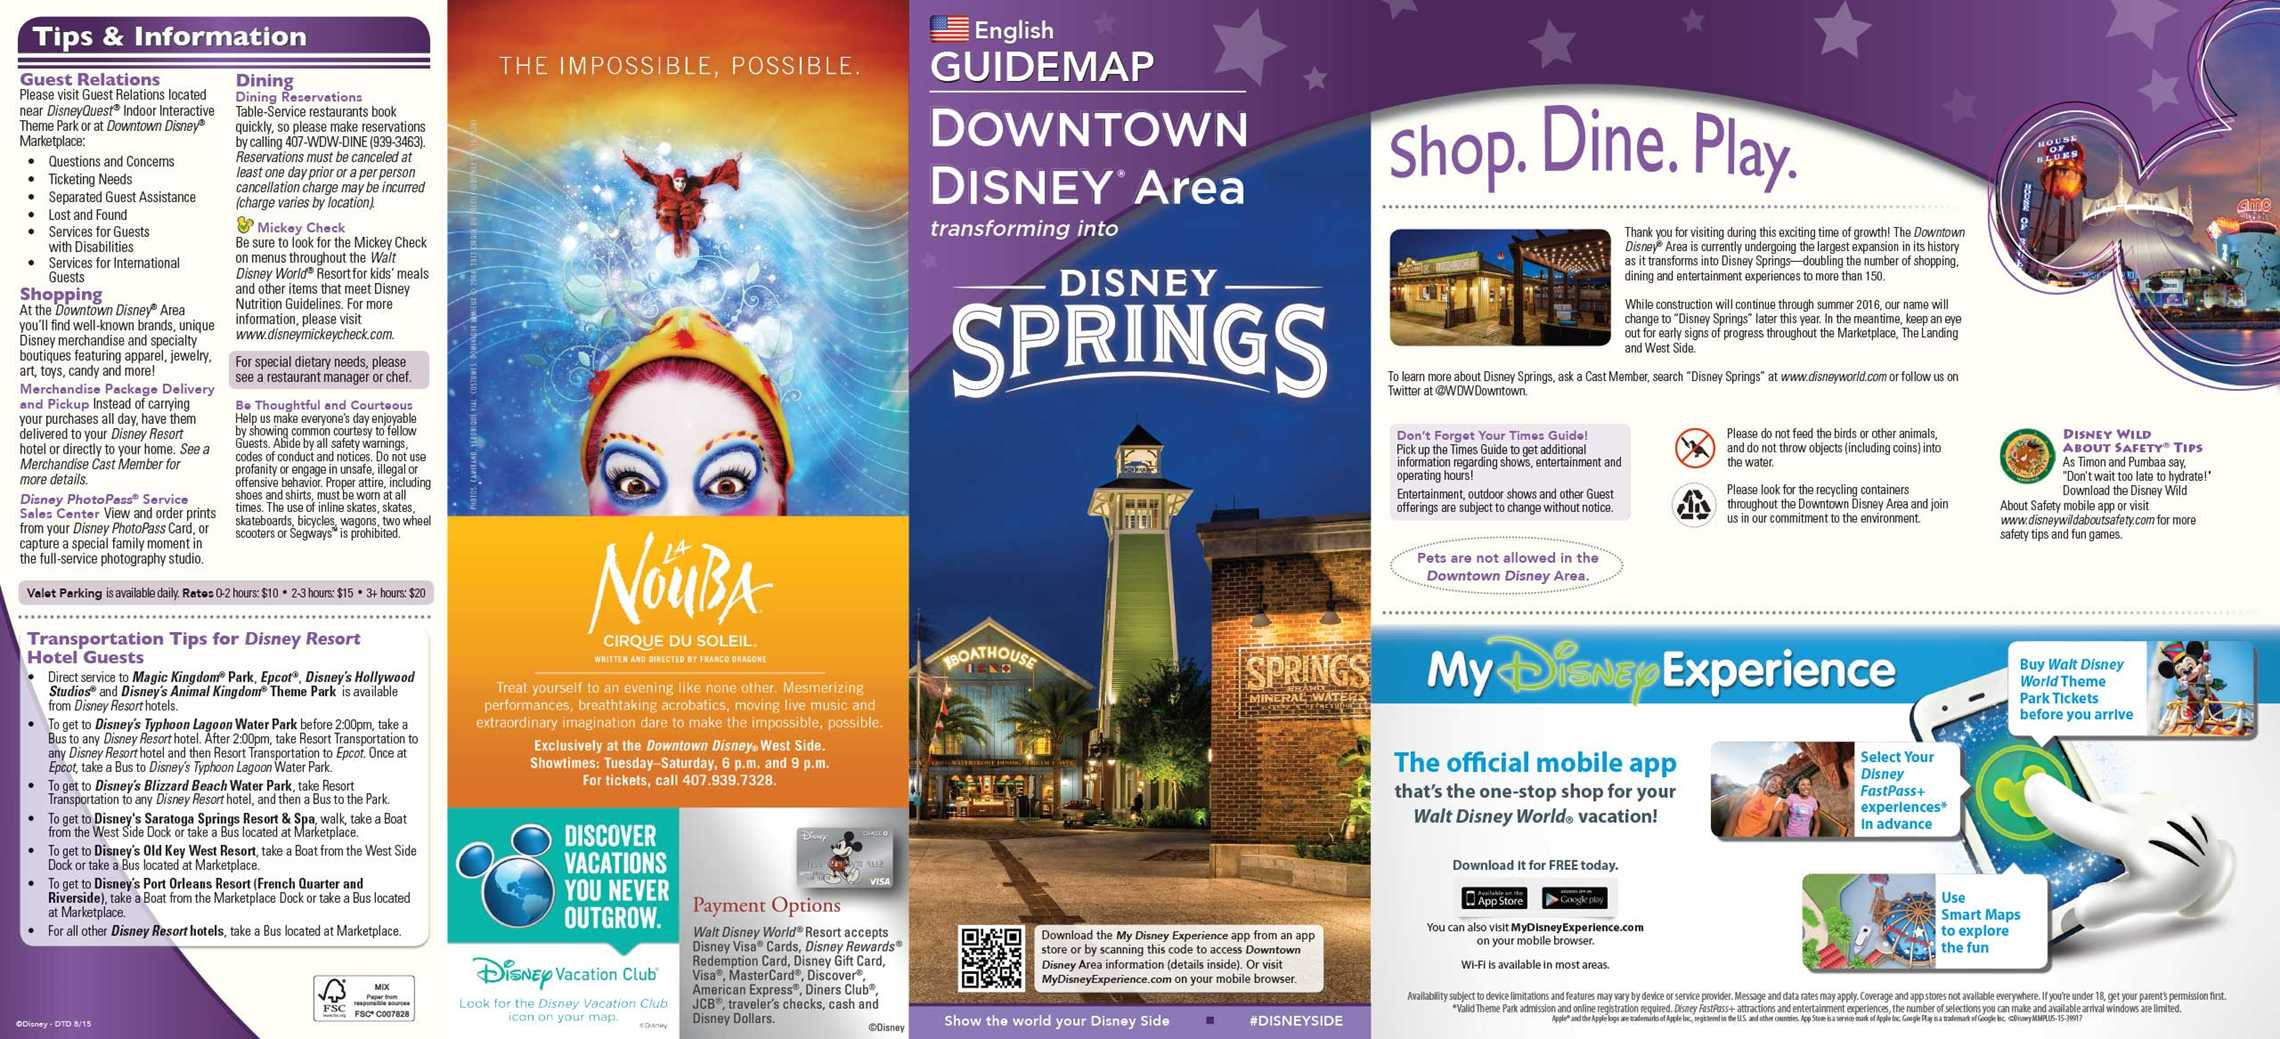 Disney Springs on the front cover of Downtown Disney Guide Map